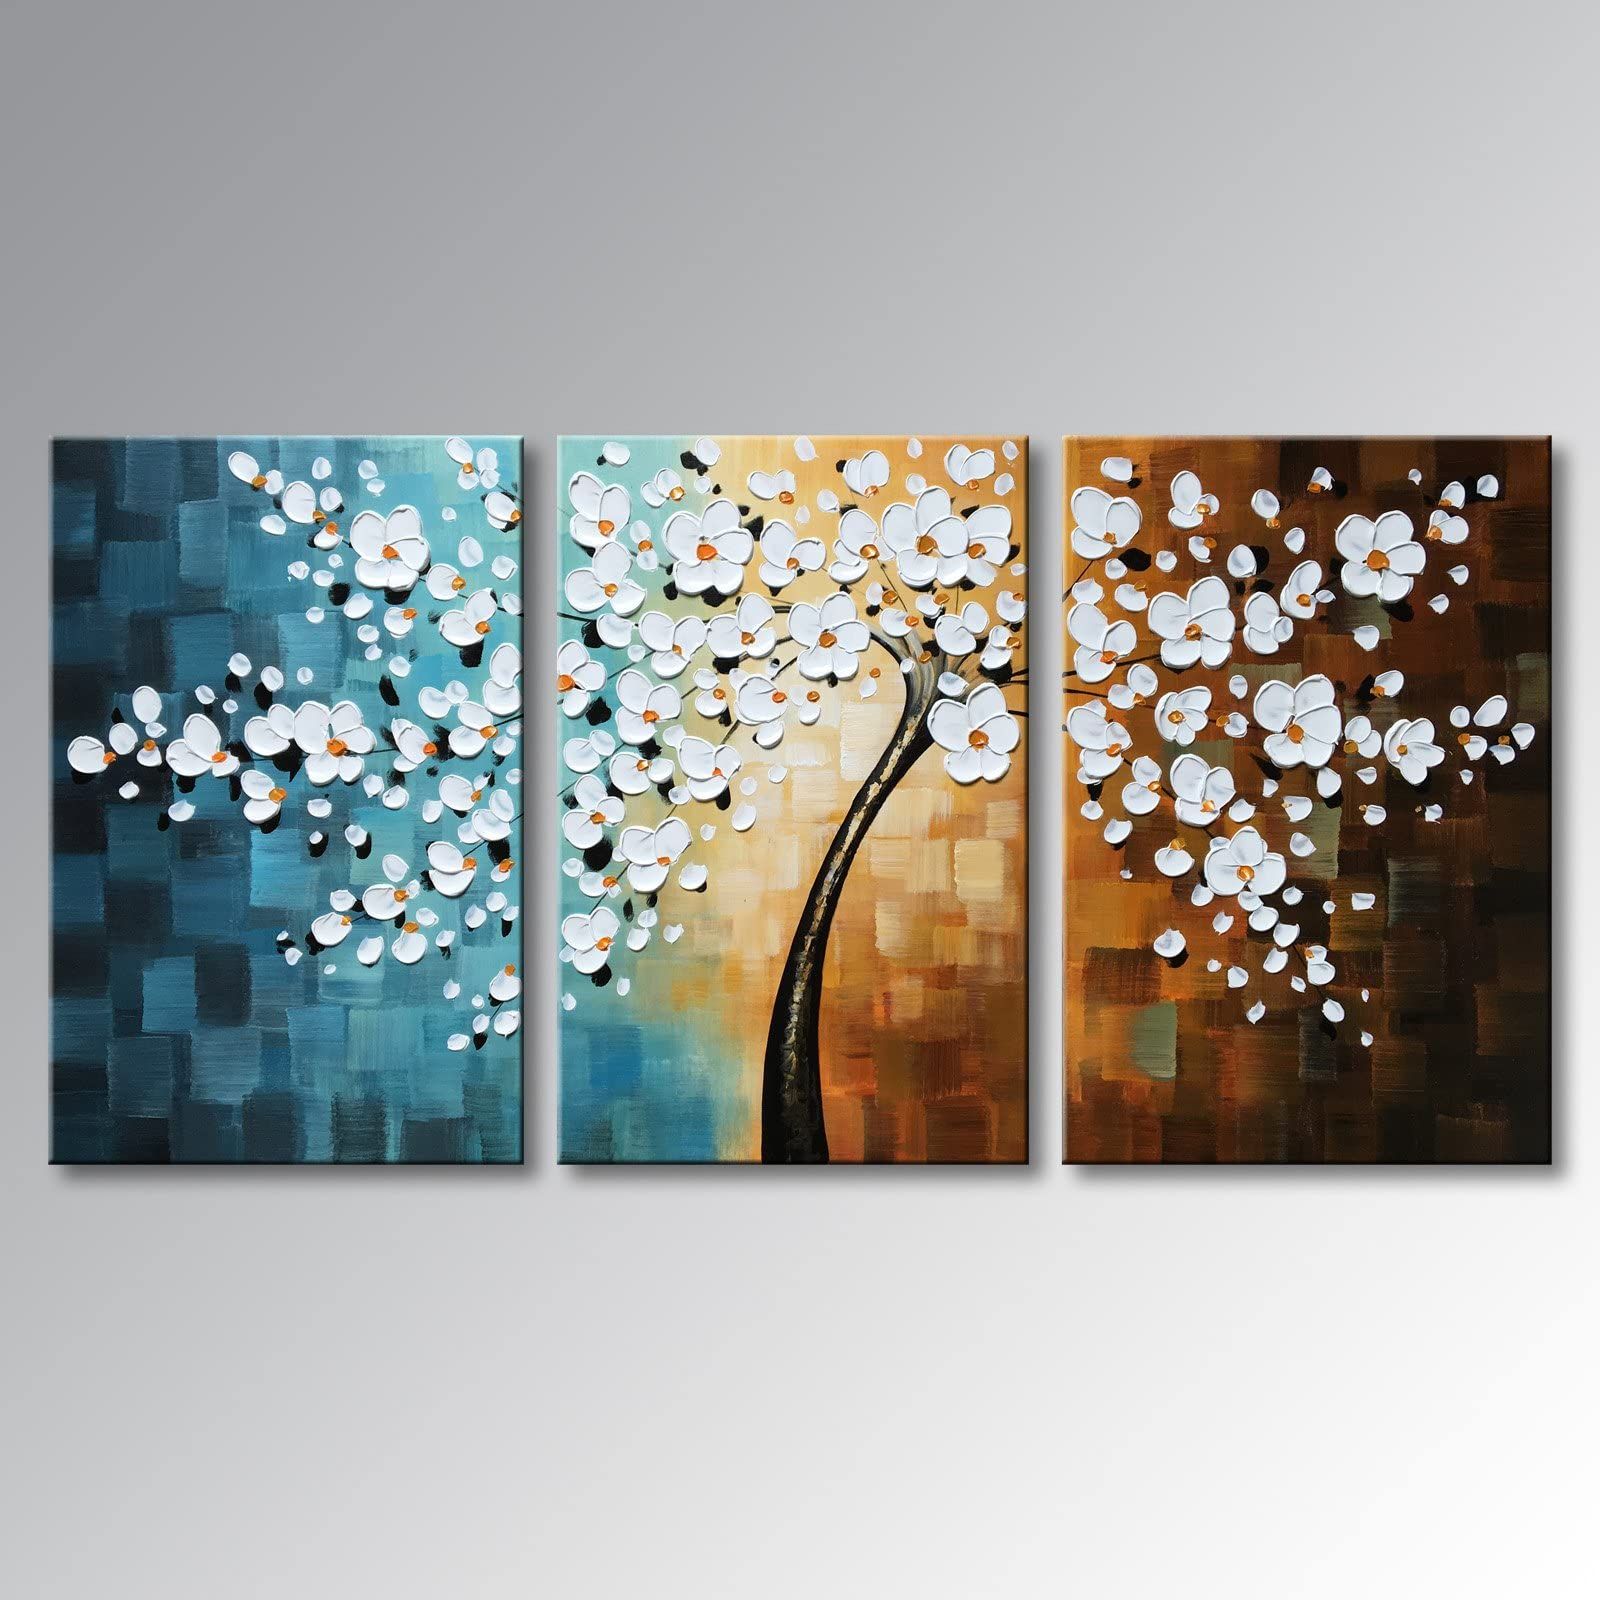 shop amazon com paintingswinpeak art hand painted abstract oil painting modern plum blossom artwork floral canvas wall art